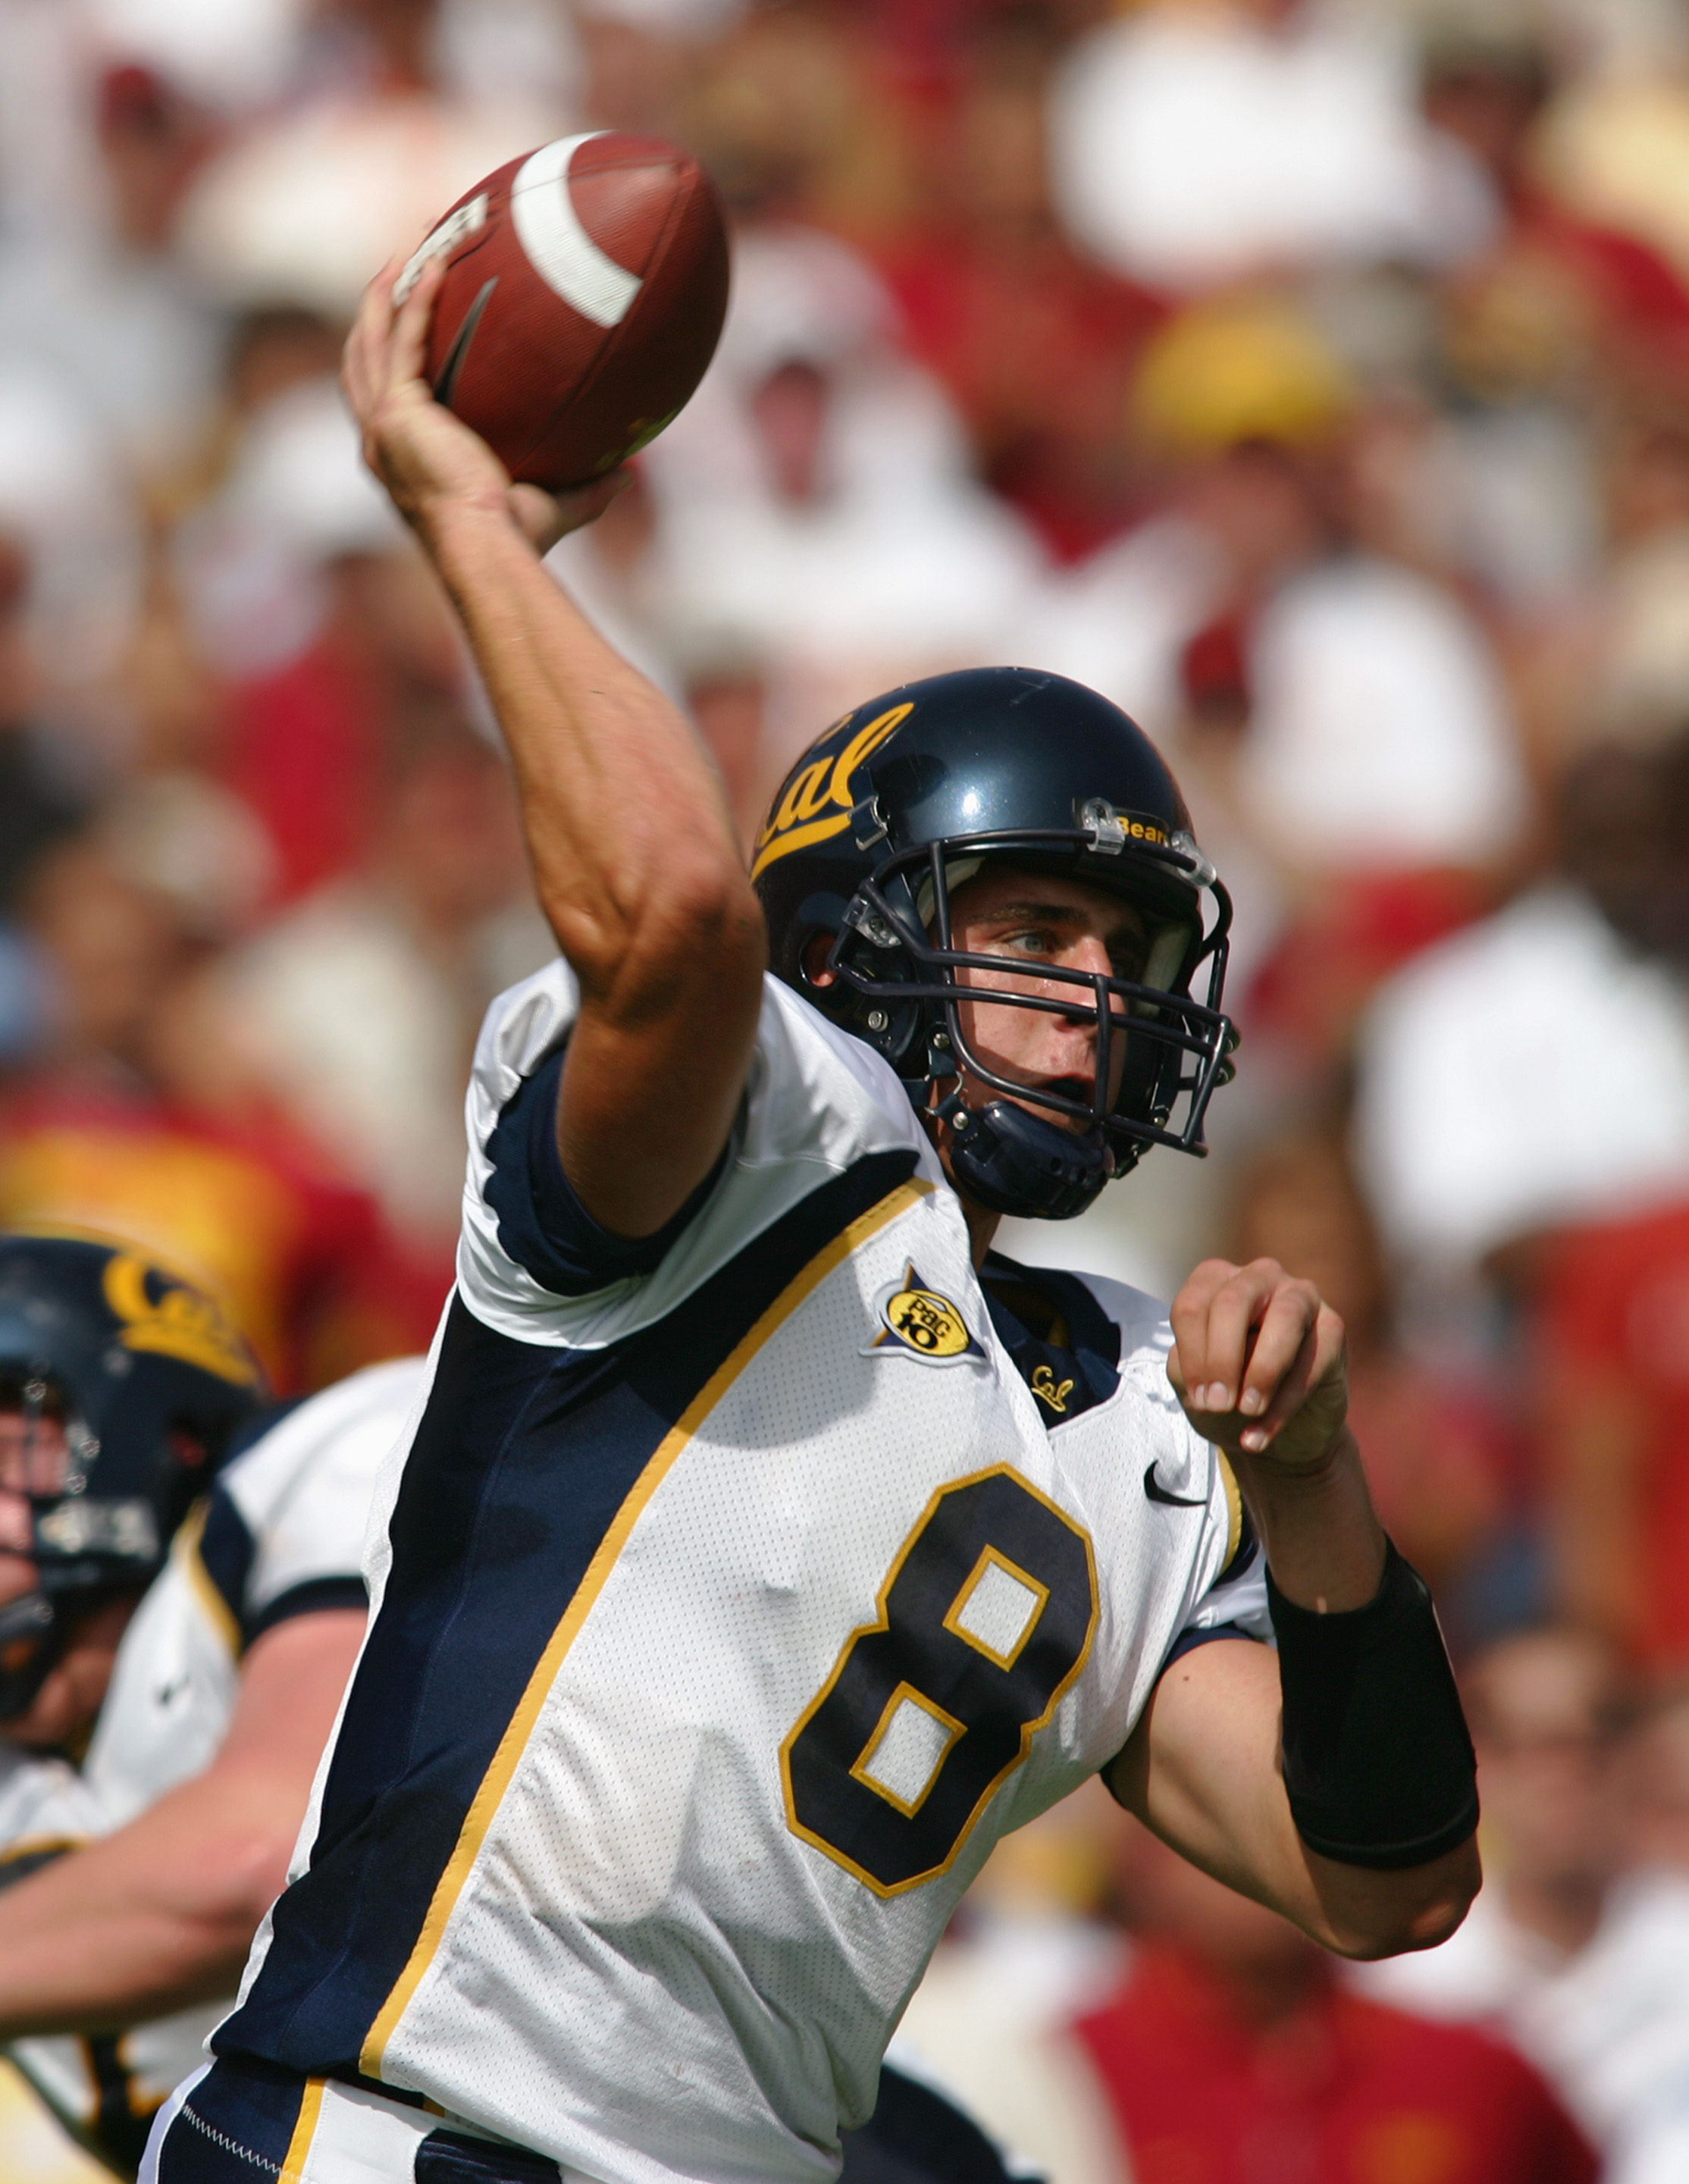 LOS ANGELES - OCTOBER 9:  Aaron Rodgers #8 of the California Golden Bears passes during the game against the USC Trojans on October 9, 2004 at Los Angeles Memorial Coliseum in Los Angeles, California.  The Trojans defeated the Golden Bears 23-17. (Photo b